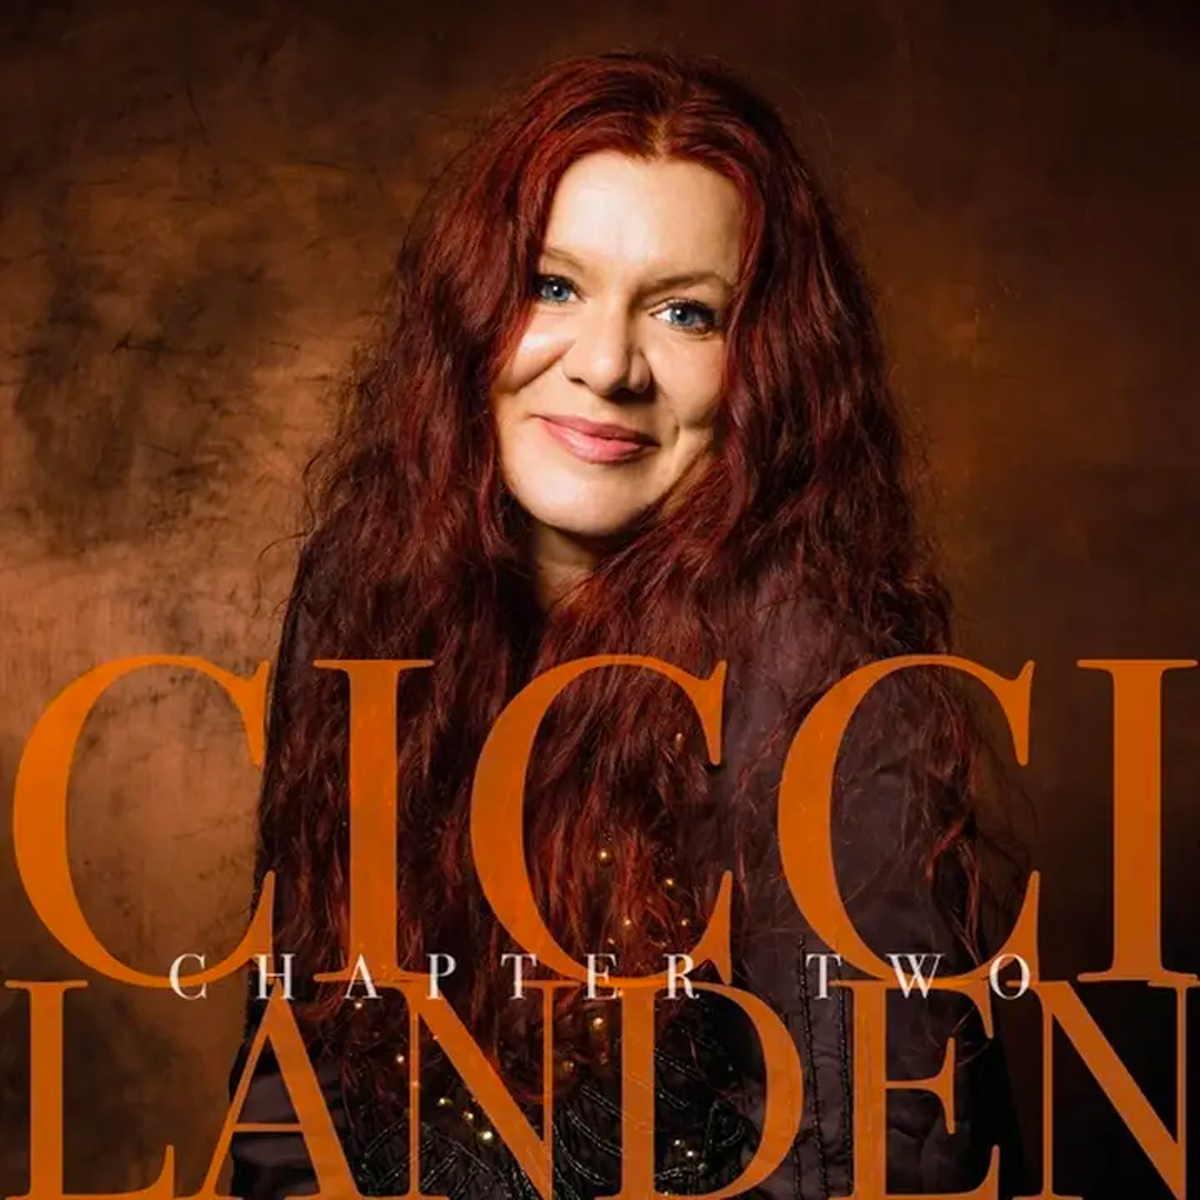 Cicci Landén album-chapter-two